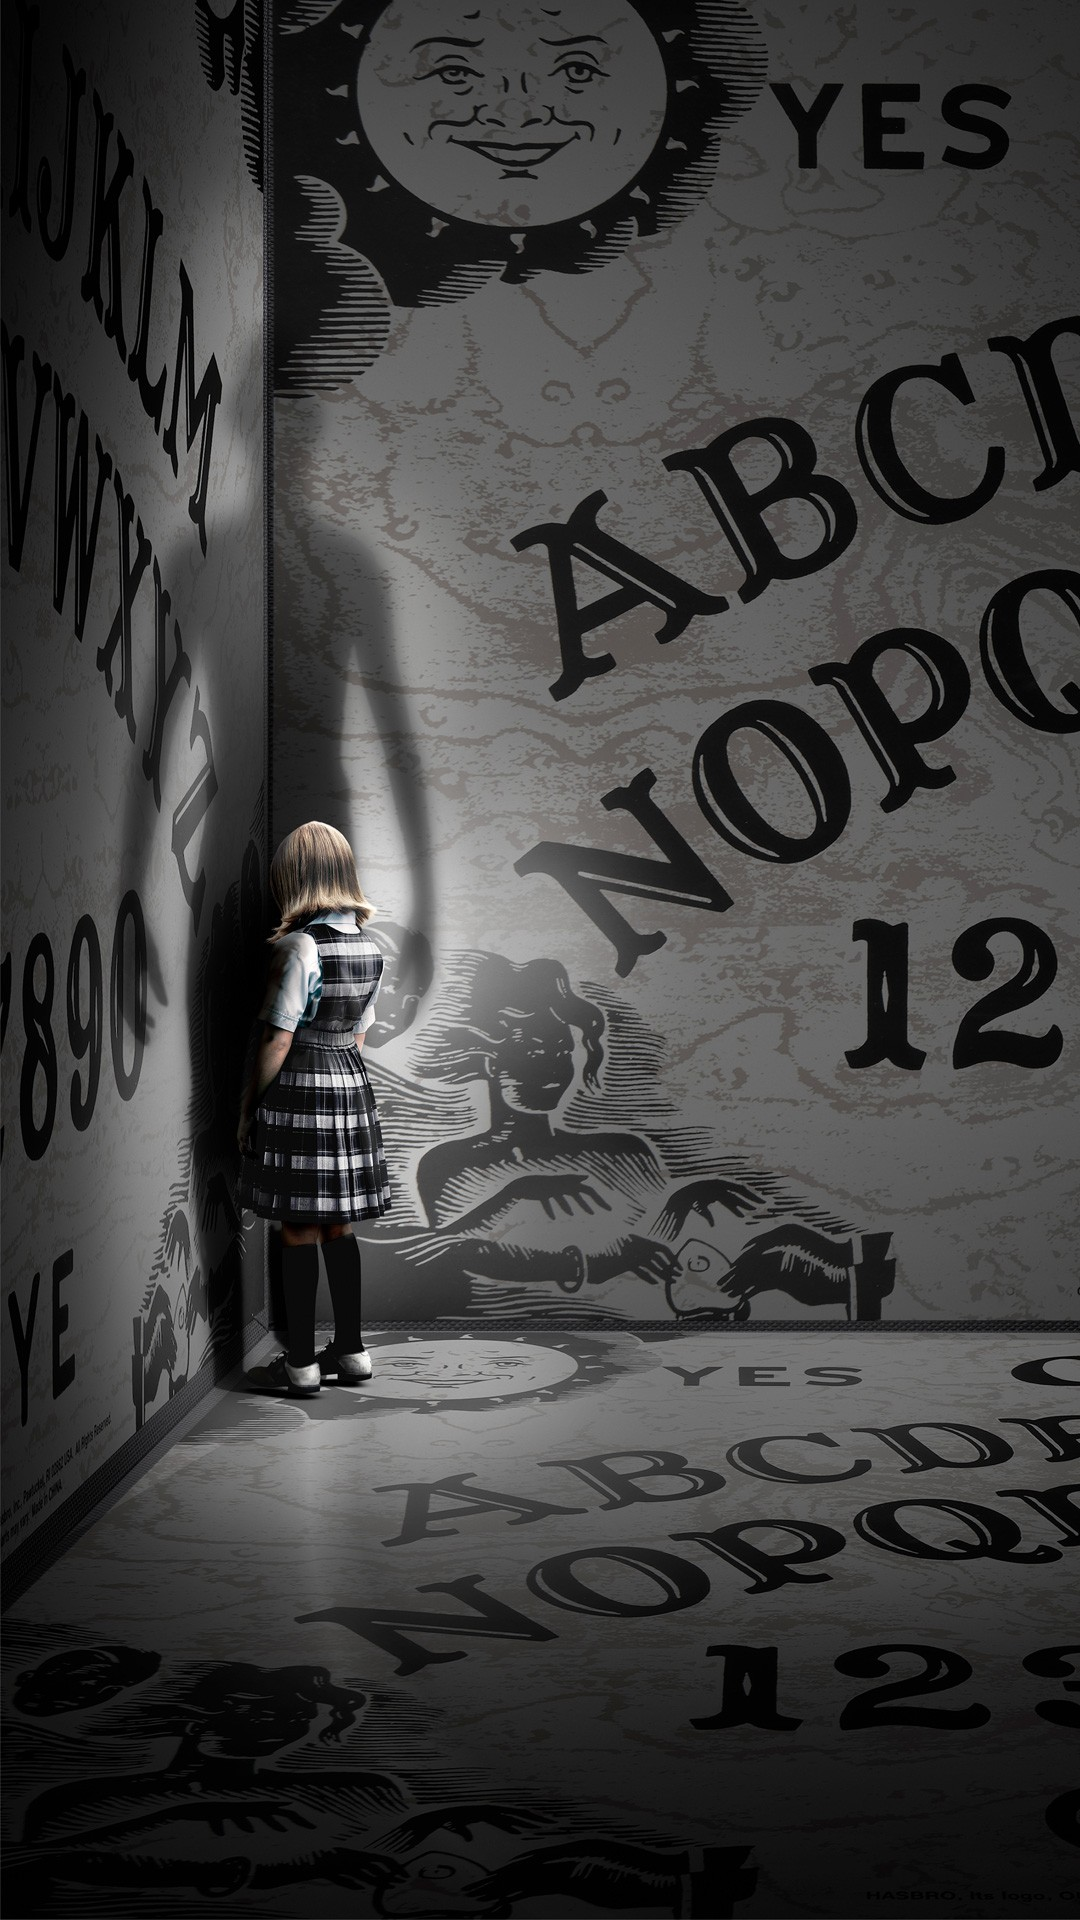 Iphone 4 Animated Wallpaper Ouija Origin Of Evil 4k Wallpapers Hd Wallpapers Id 18973